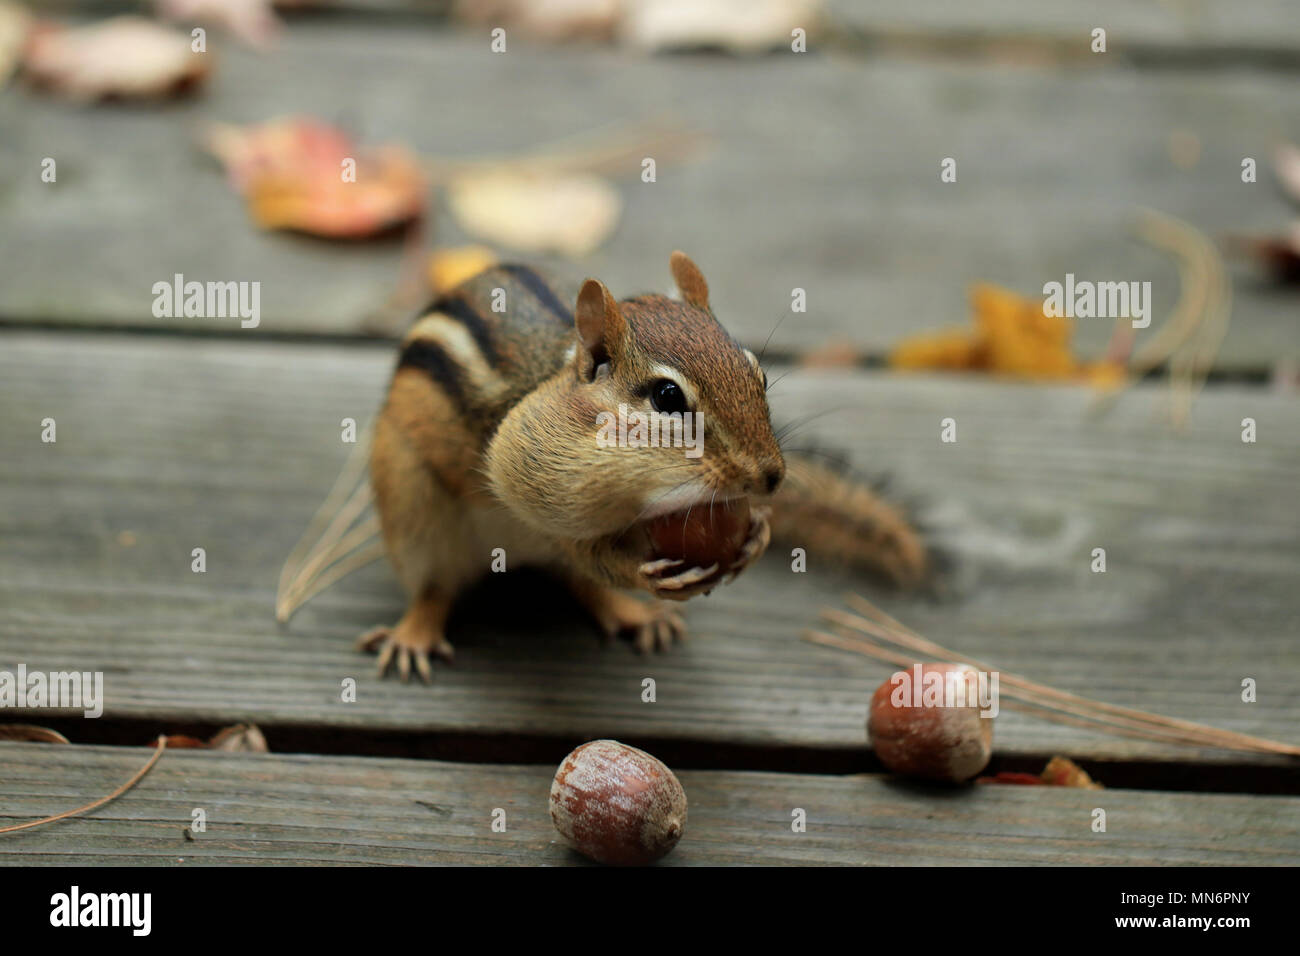 Close-up of Eastern chipmunk (Tamias striatus) attempting to stuff its cheeks with an acorn Stock Photo